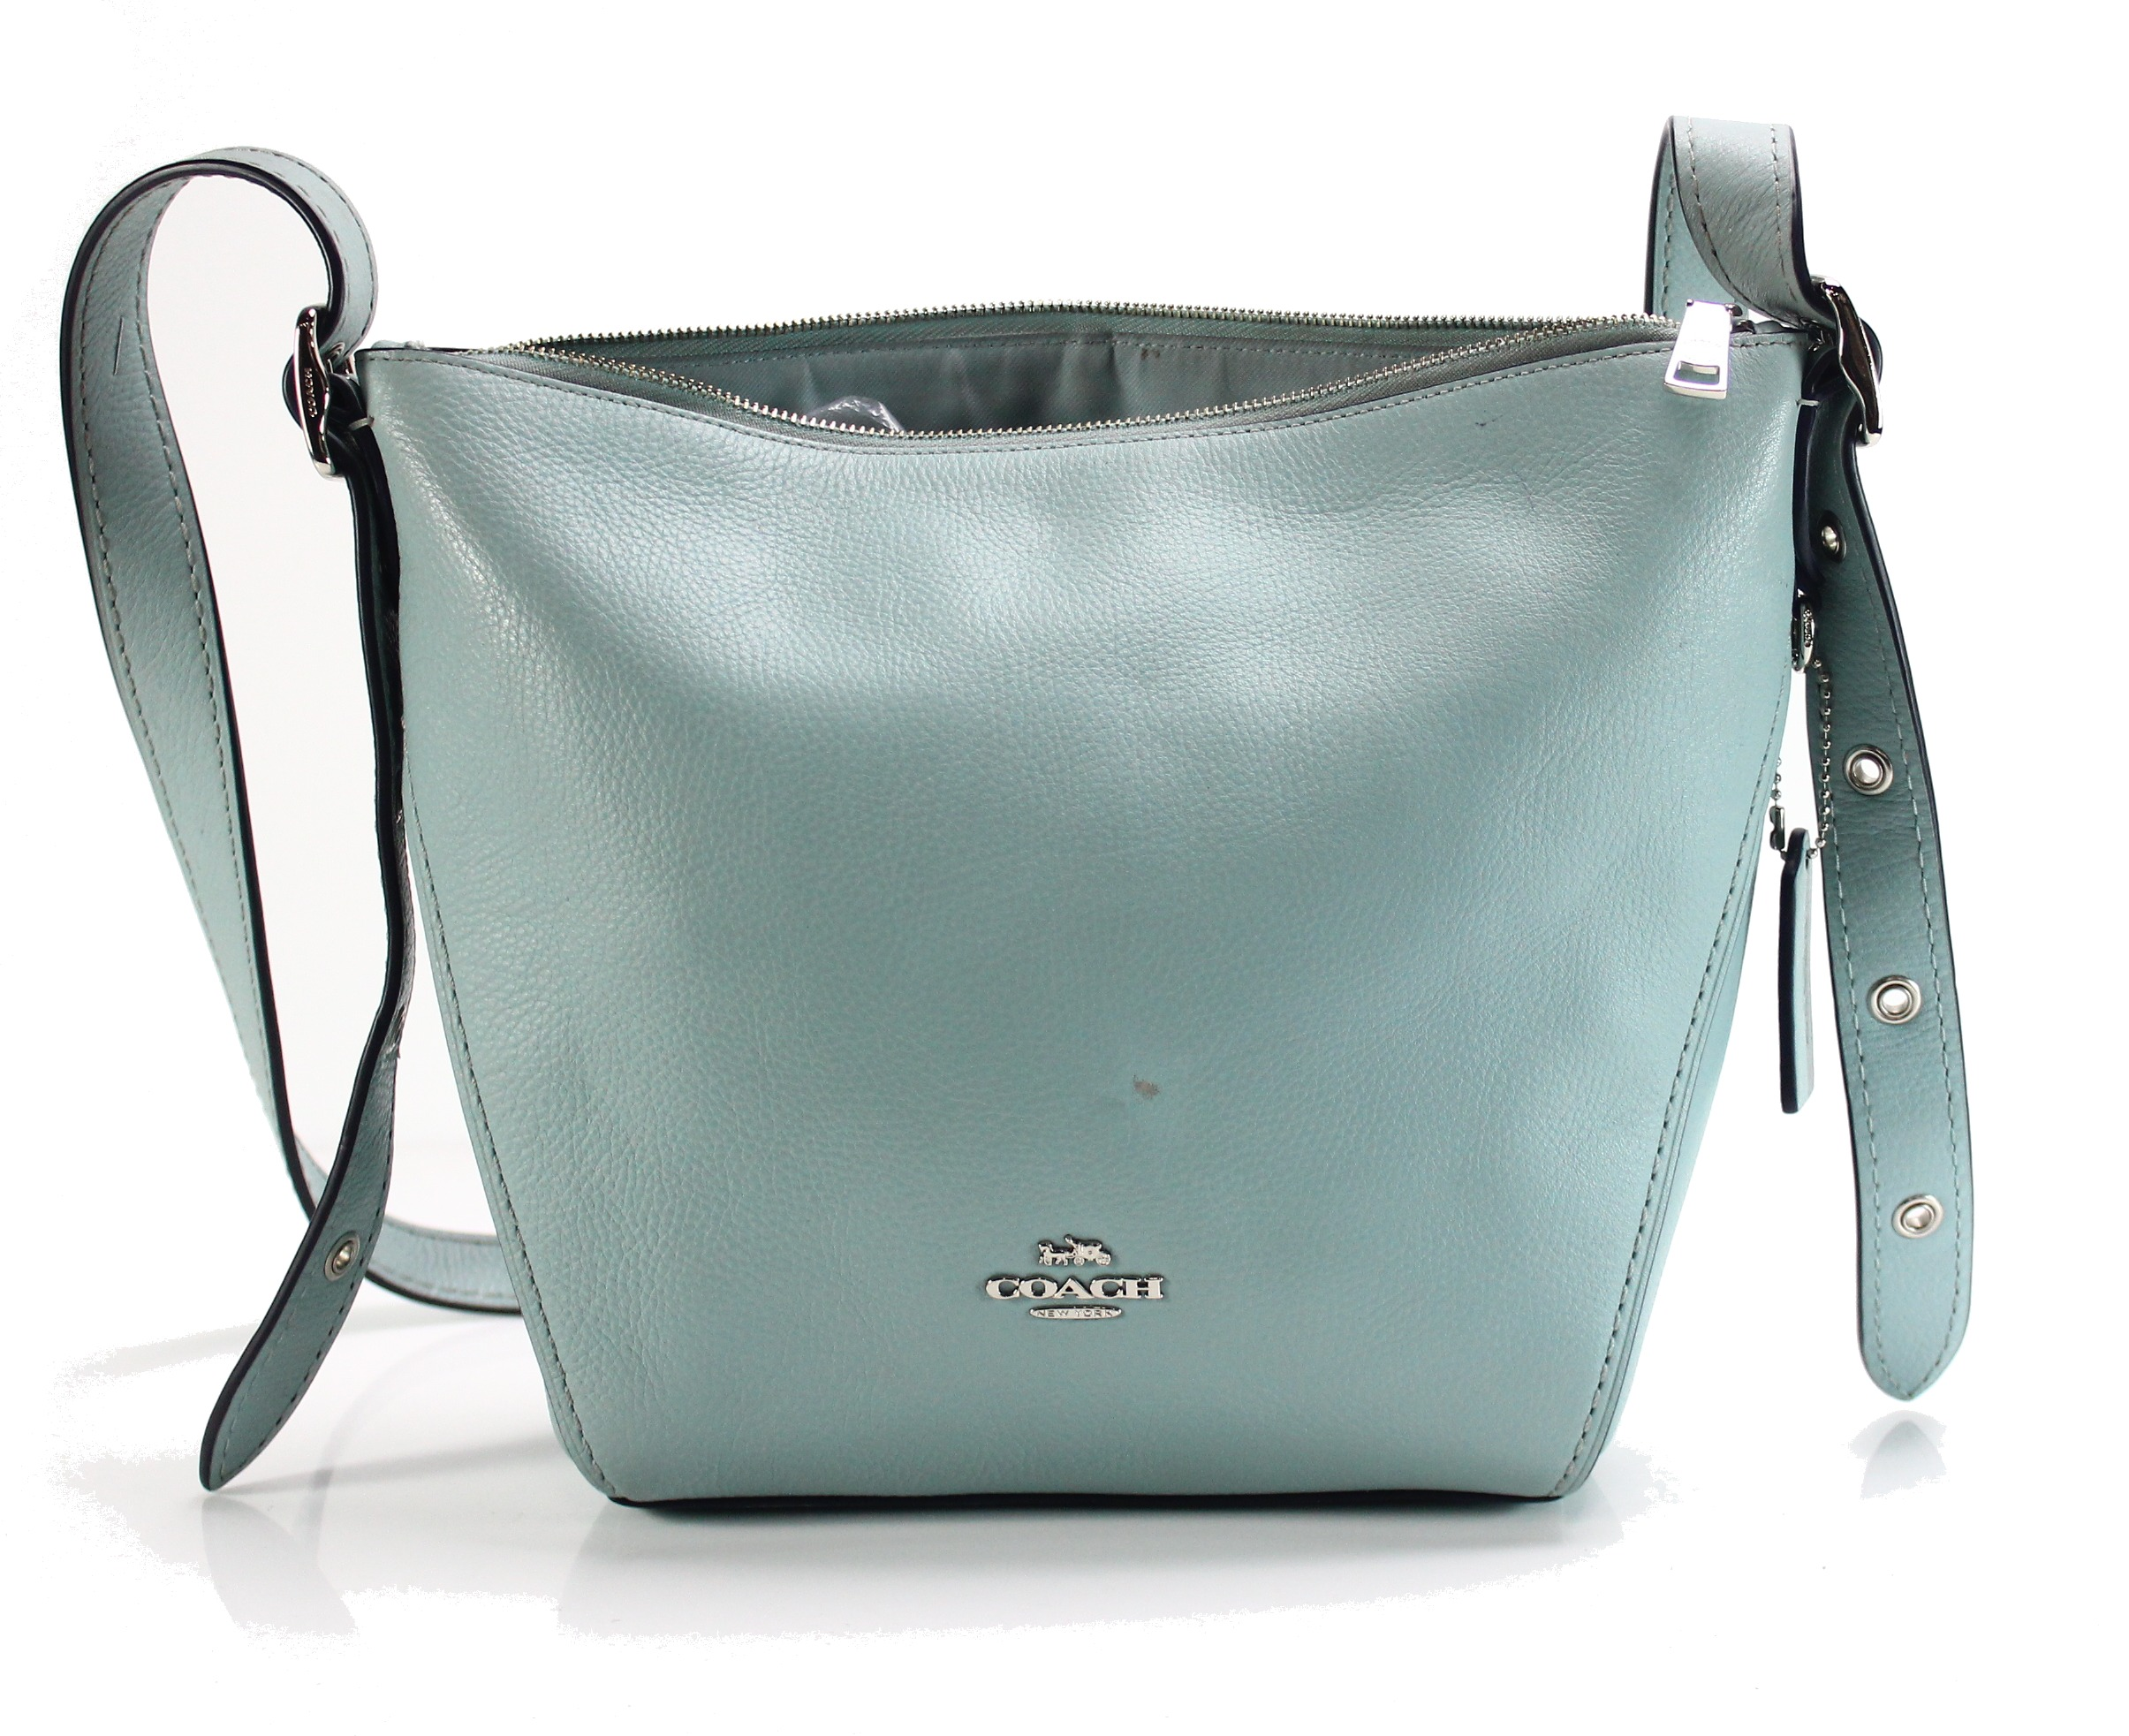 c46e333570a8 We have more Coach in Size One Size - Click Here Click to see all Women s  Handbags   Purses in Size One Size